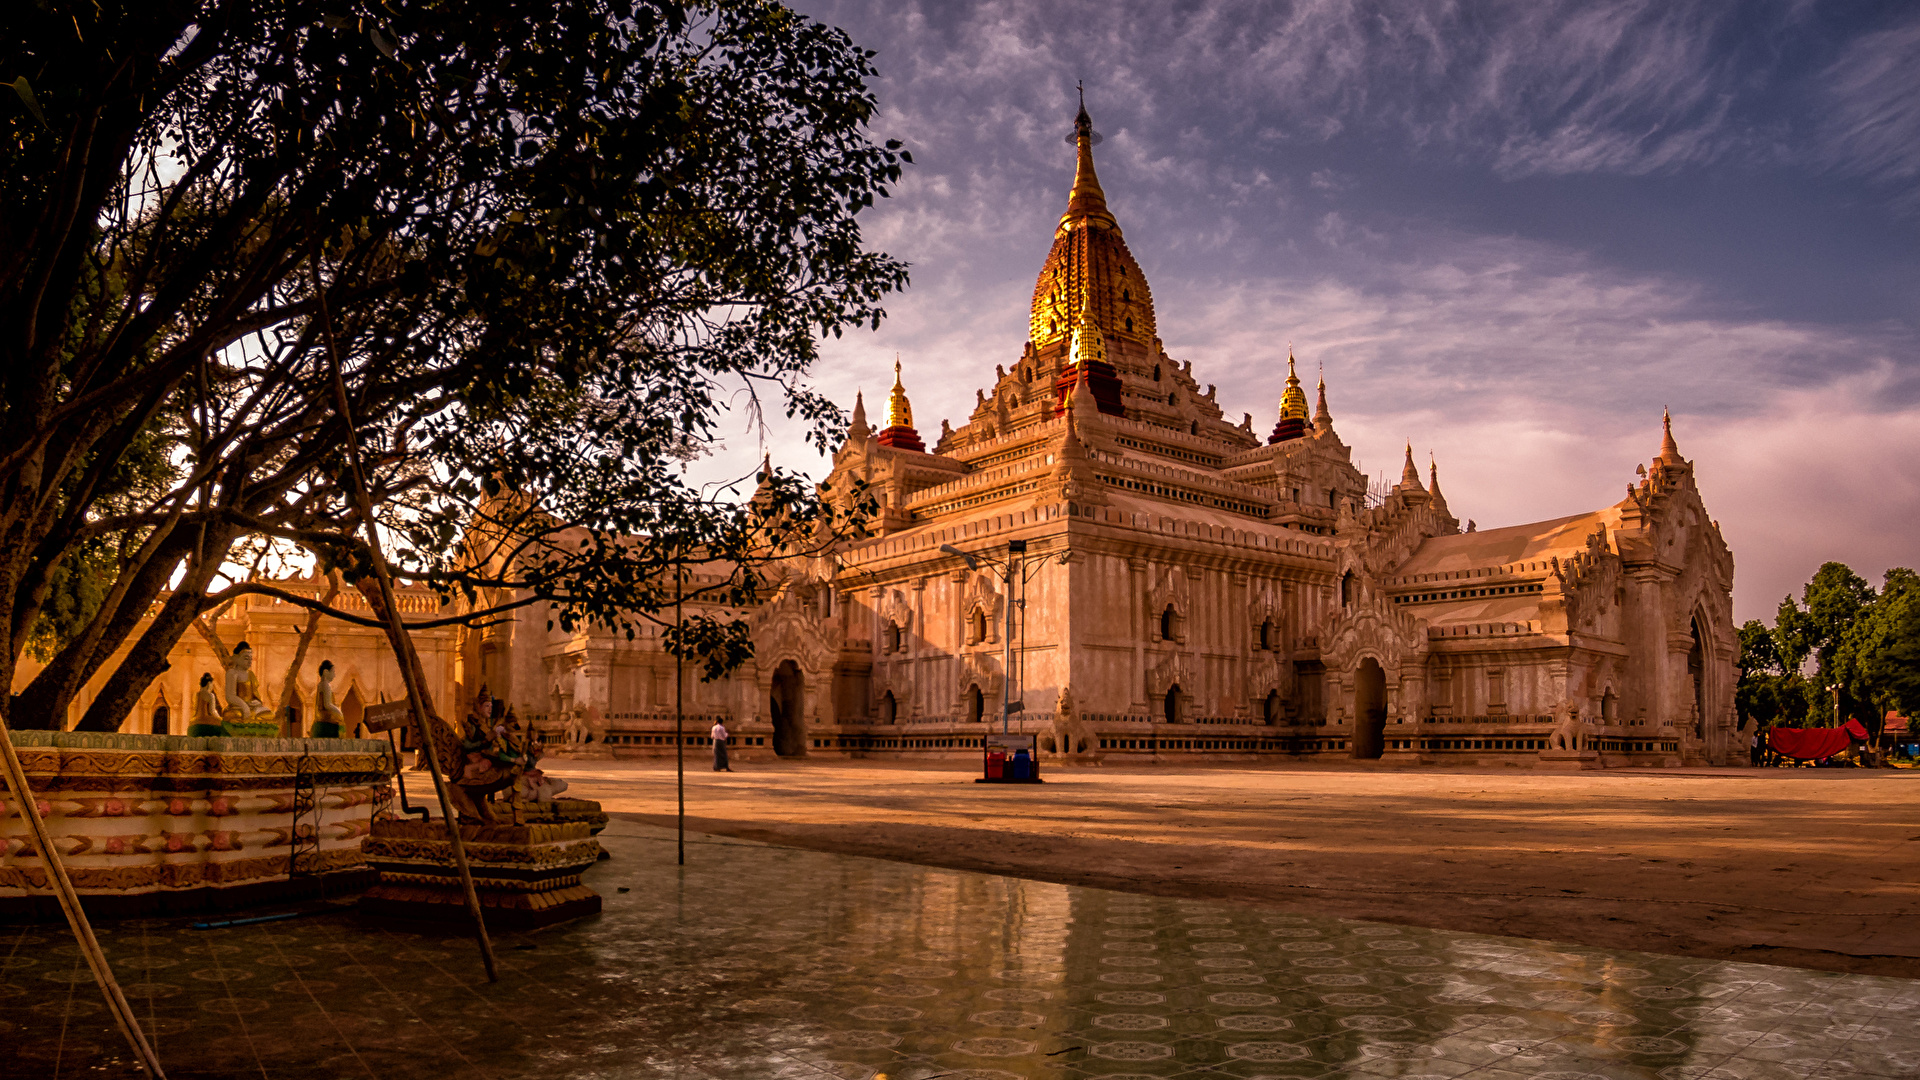 Wallpapers Bagan Myanmar Temples Cities Sculptures 1920x1080